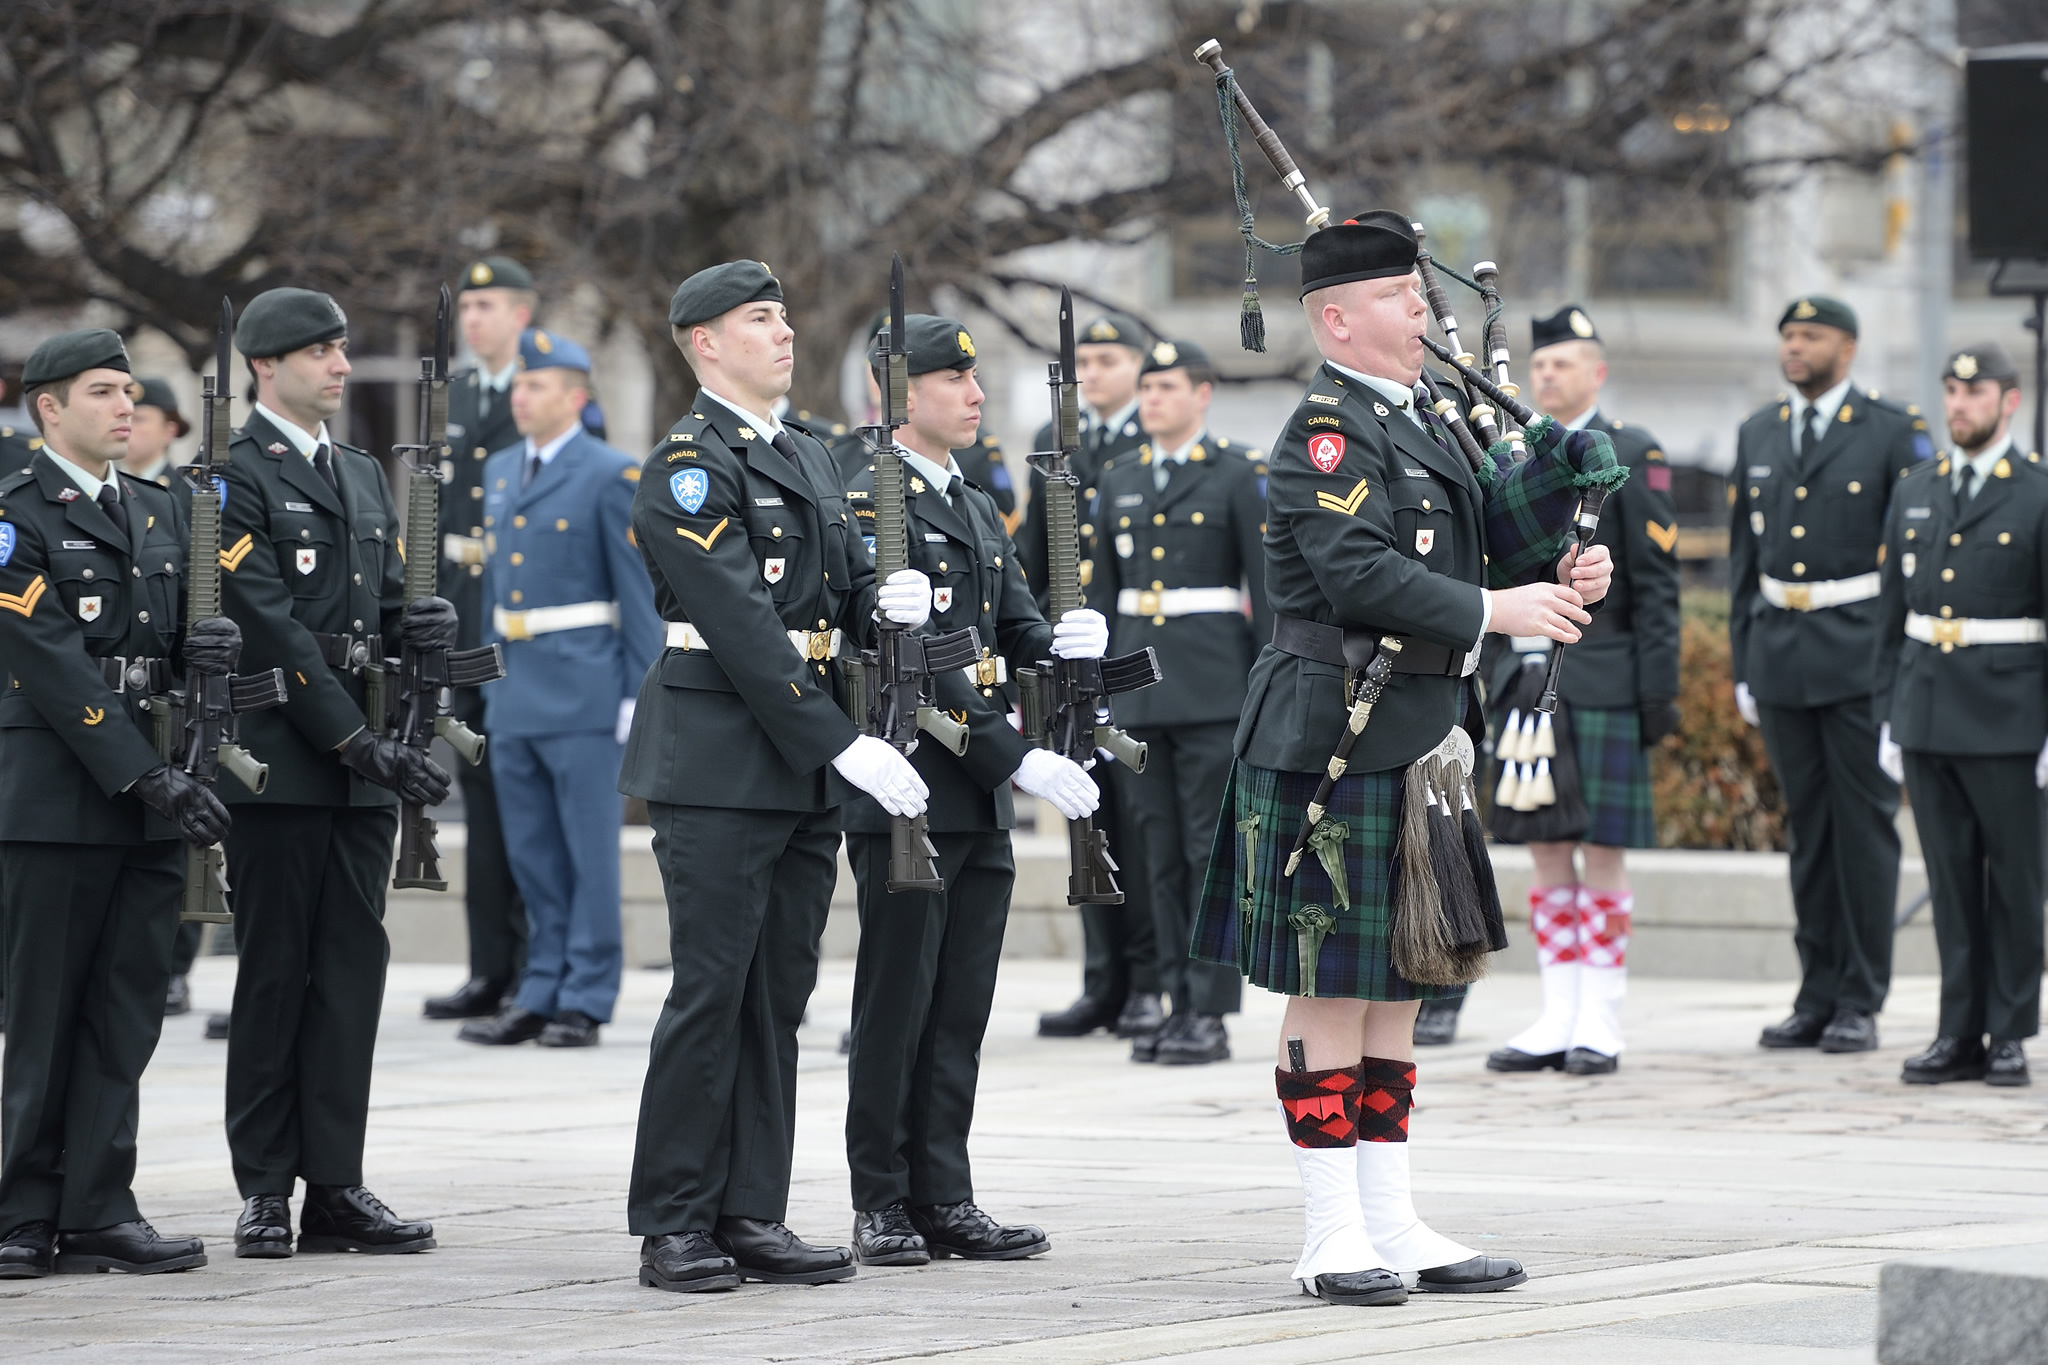 Ottawa, Ontario. 9 April 2015 – Soldiers attend the launch of the National Sentry Program for 2015 at the Tomb of the Unknown Soldier. (Photo: Cpl Wesley, Directorate of Army Public Affairs)